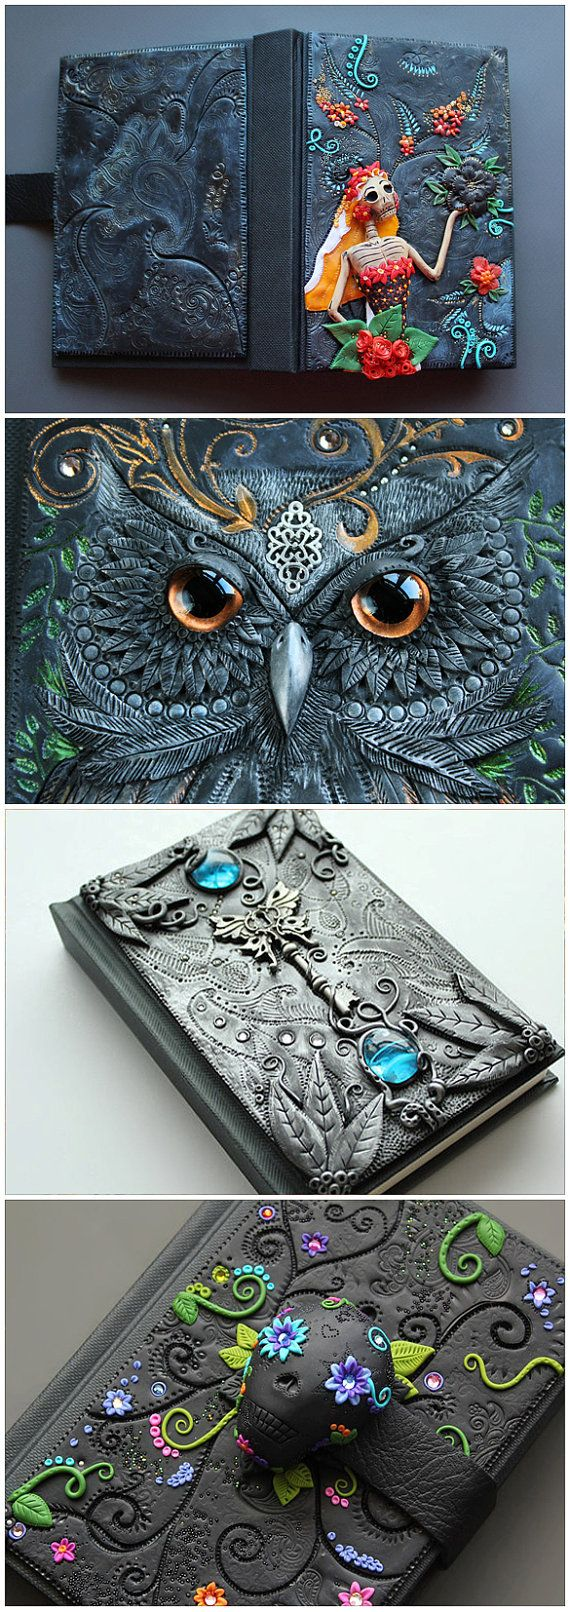 Yes, it is polymer clay - Journals